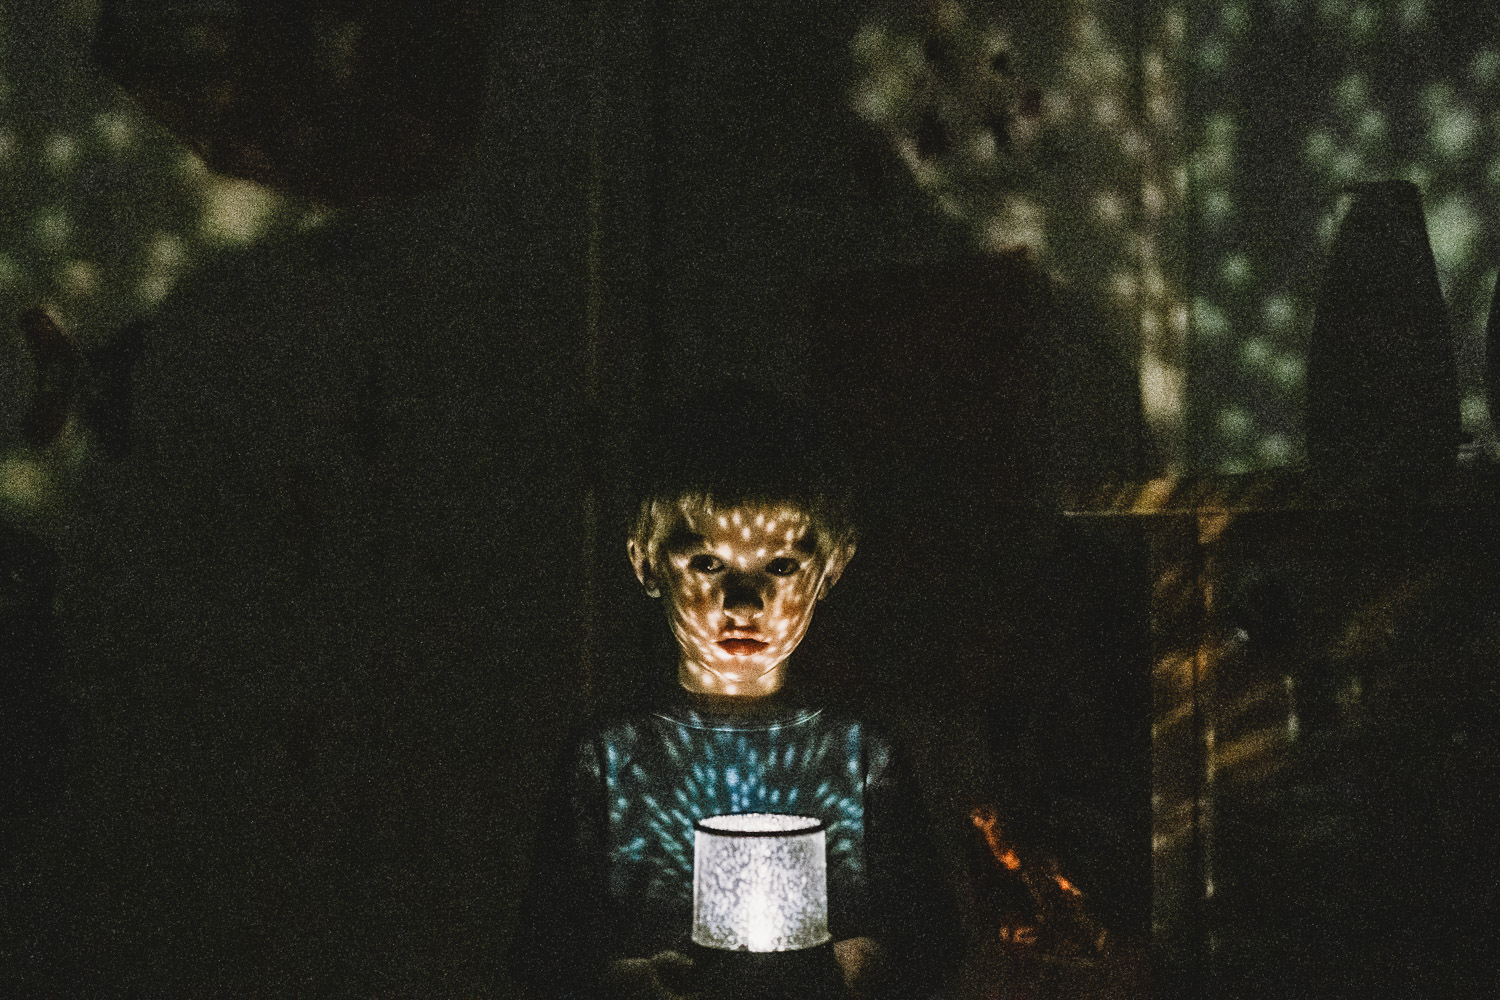 A little boy holds a nightlight in front of his face in a dark room.